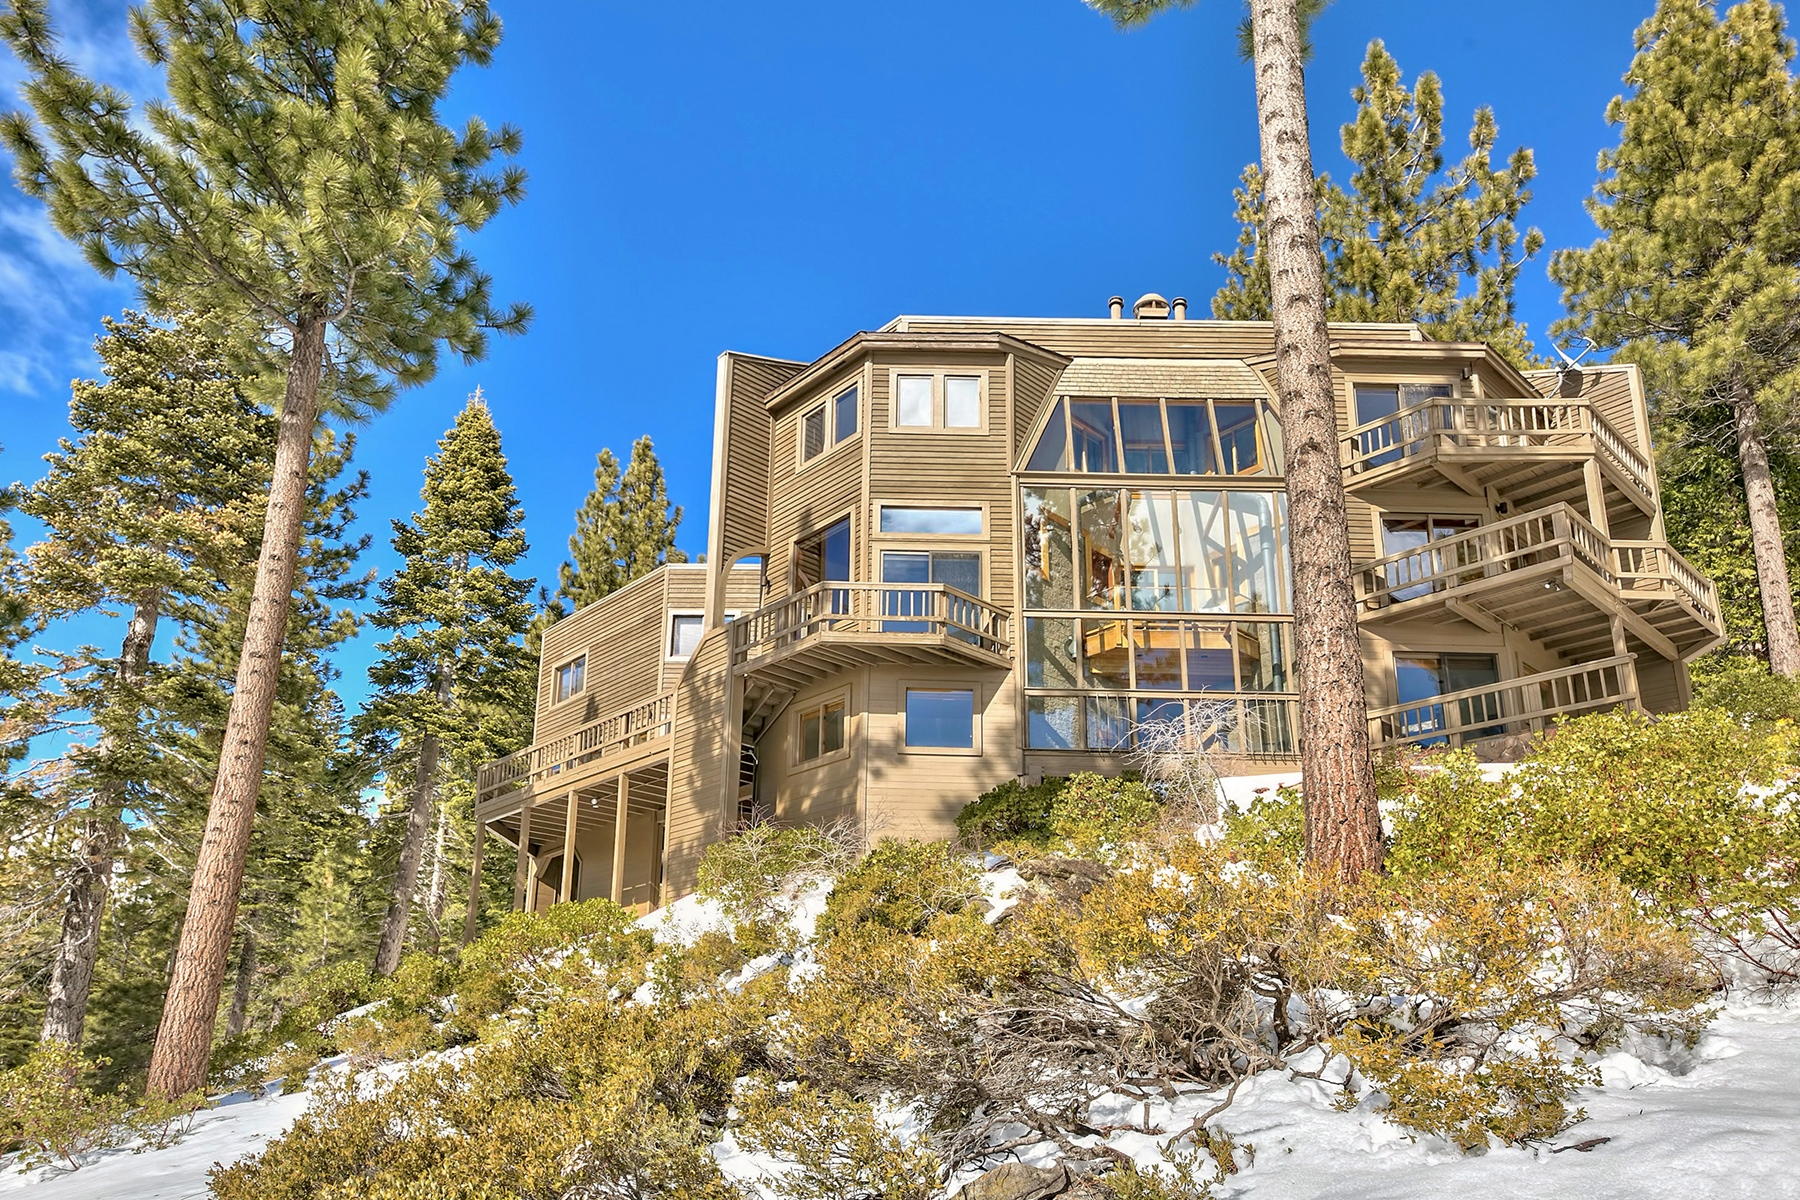 Additional photo for property listing at 638 Fairview Boulevard , Incline Village, Nevada 638 Fairview Boulevard Incline Village, Nevada 89451 United States